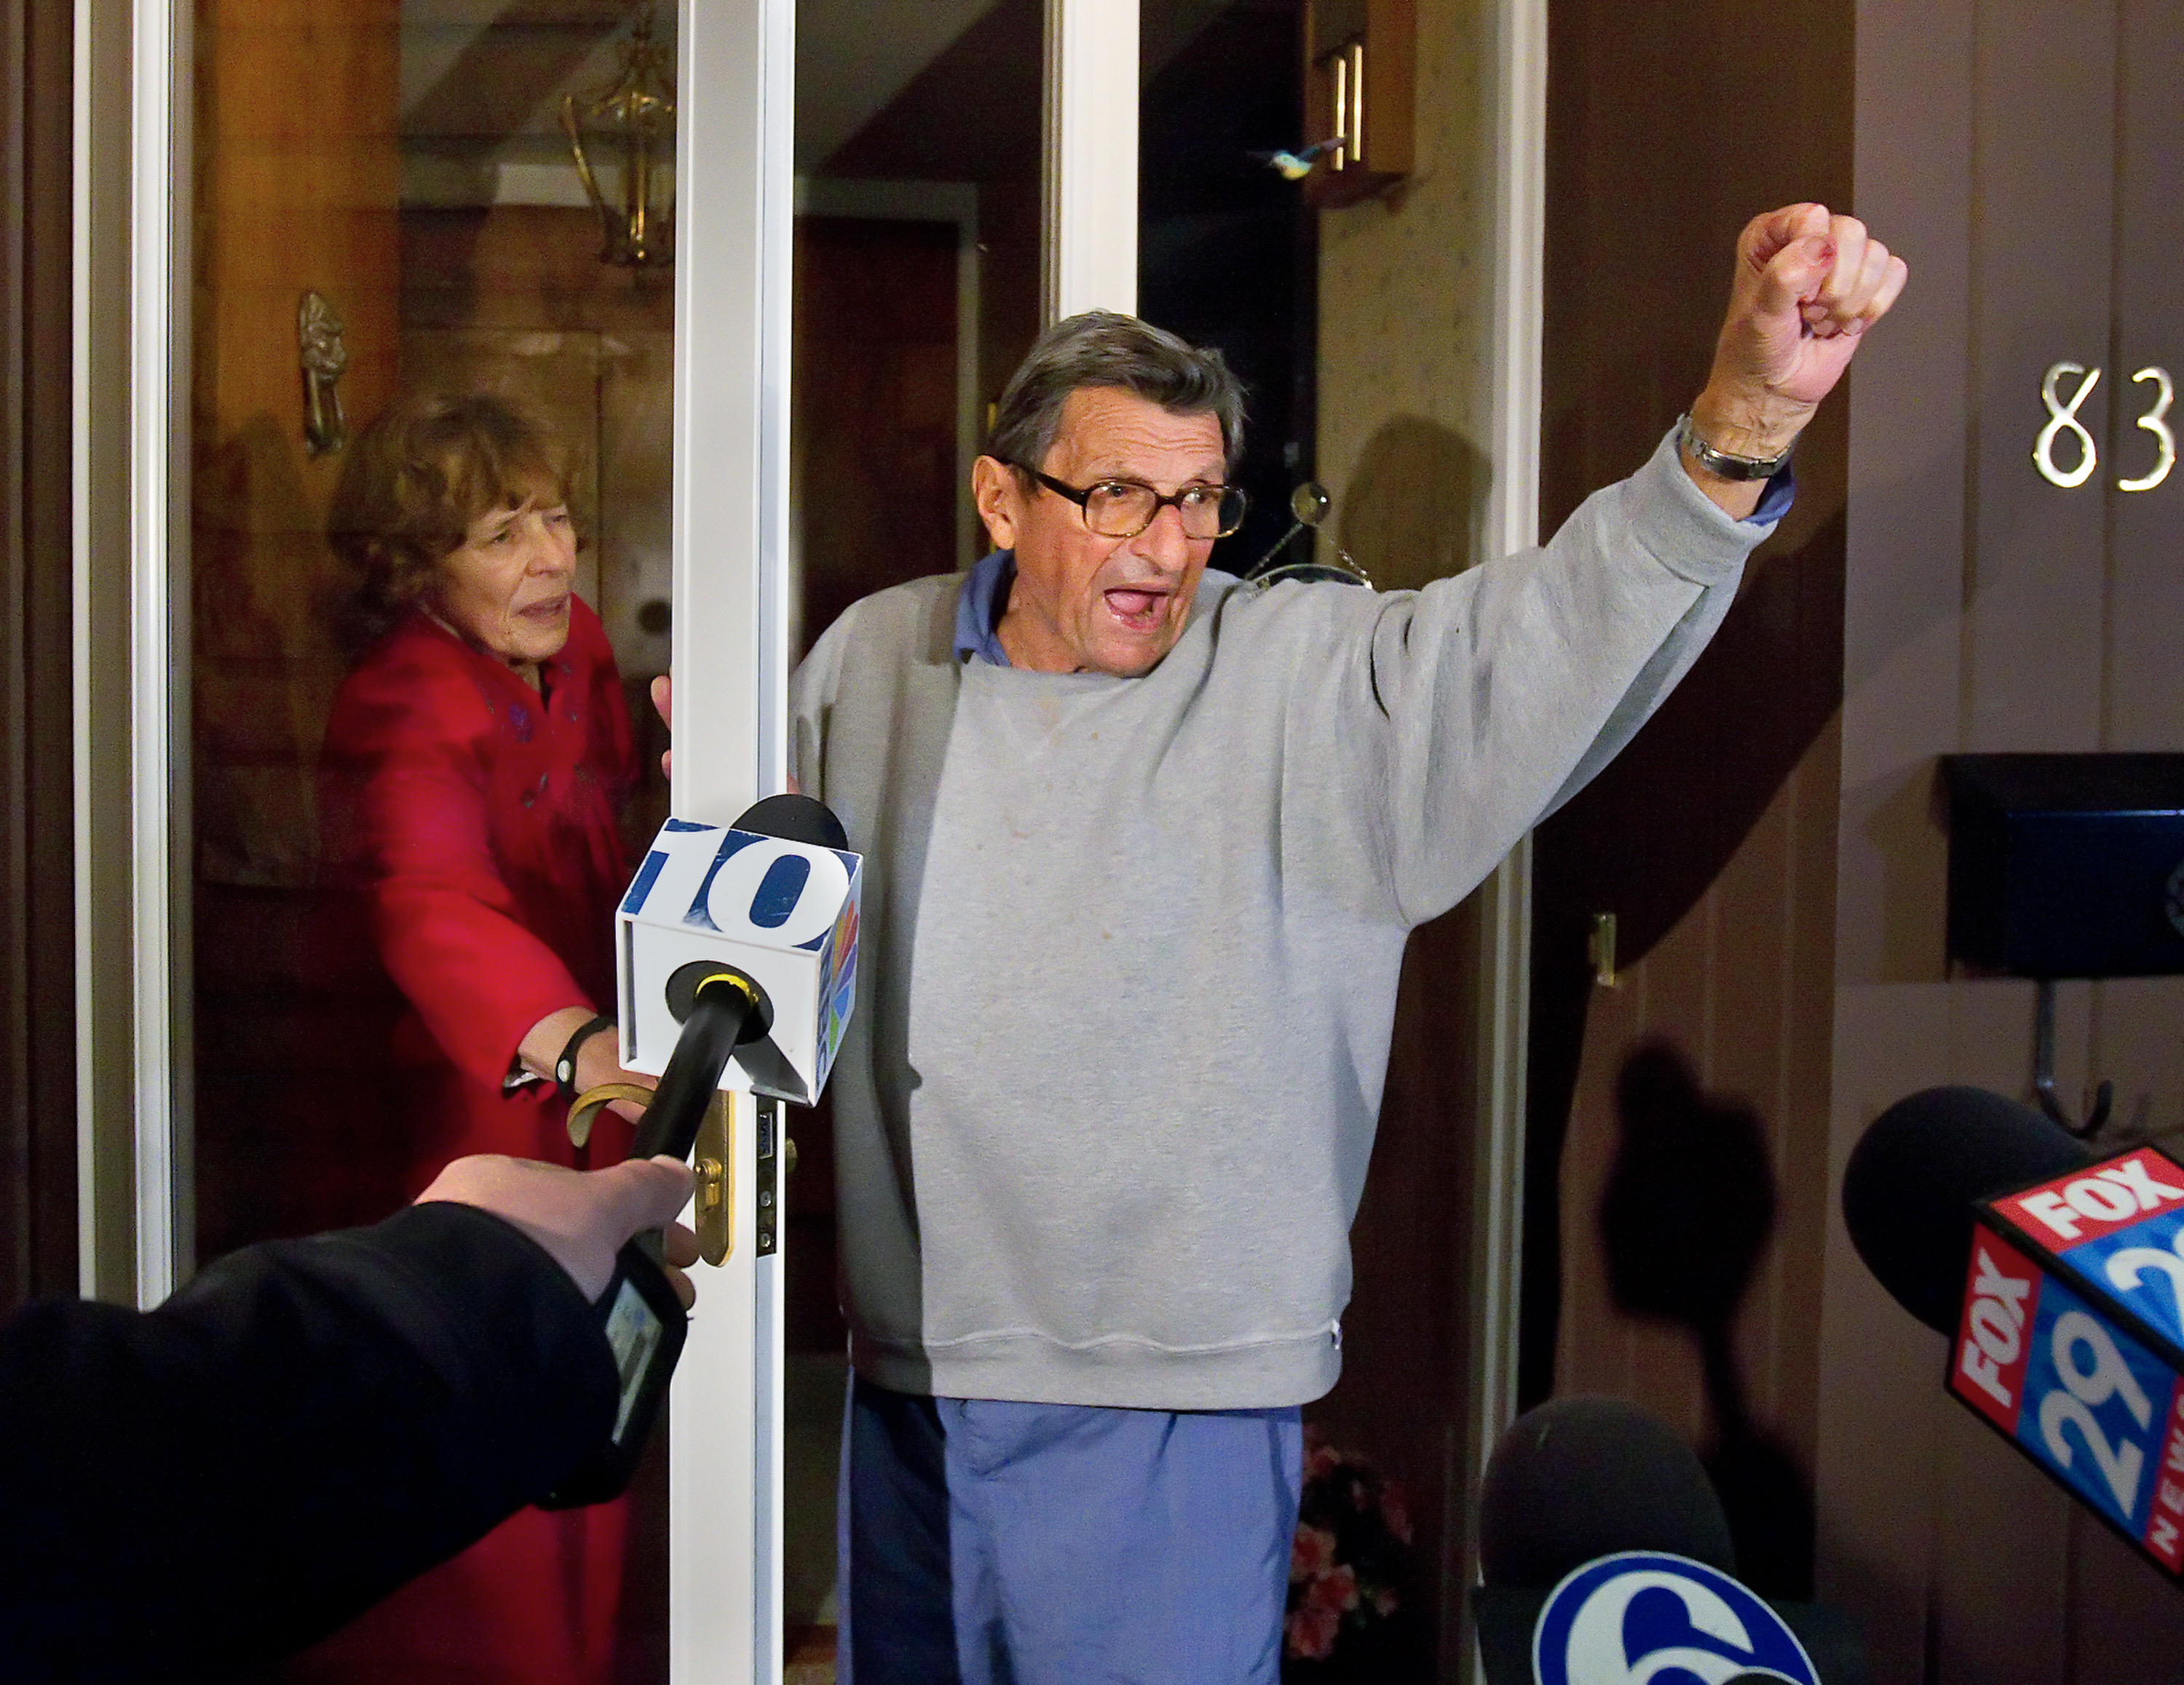 'I wish I had done more': Joe Paterno fired by Penn State on this day in 2011